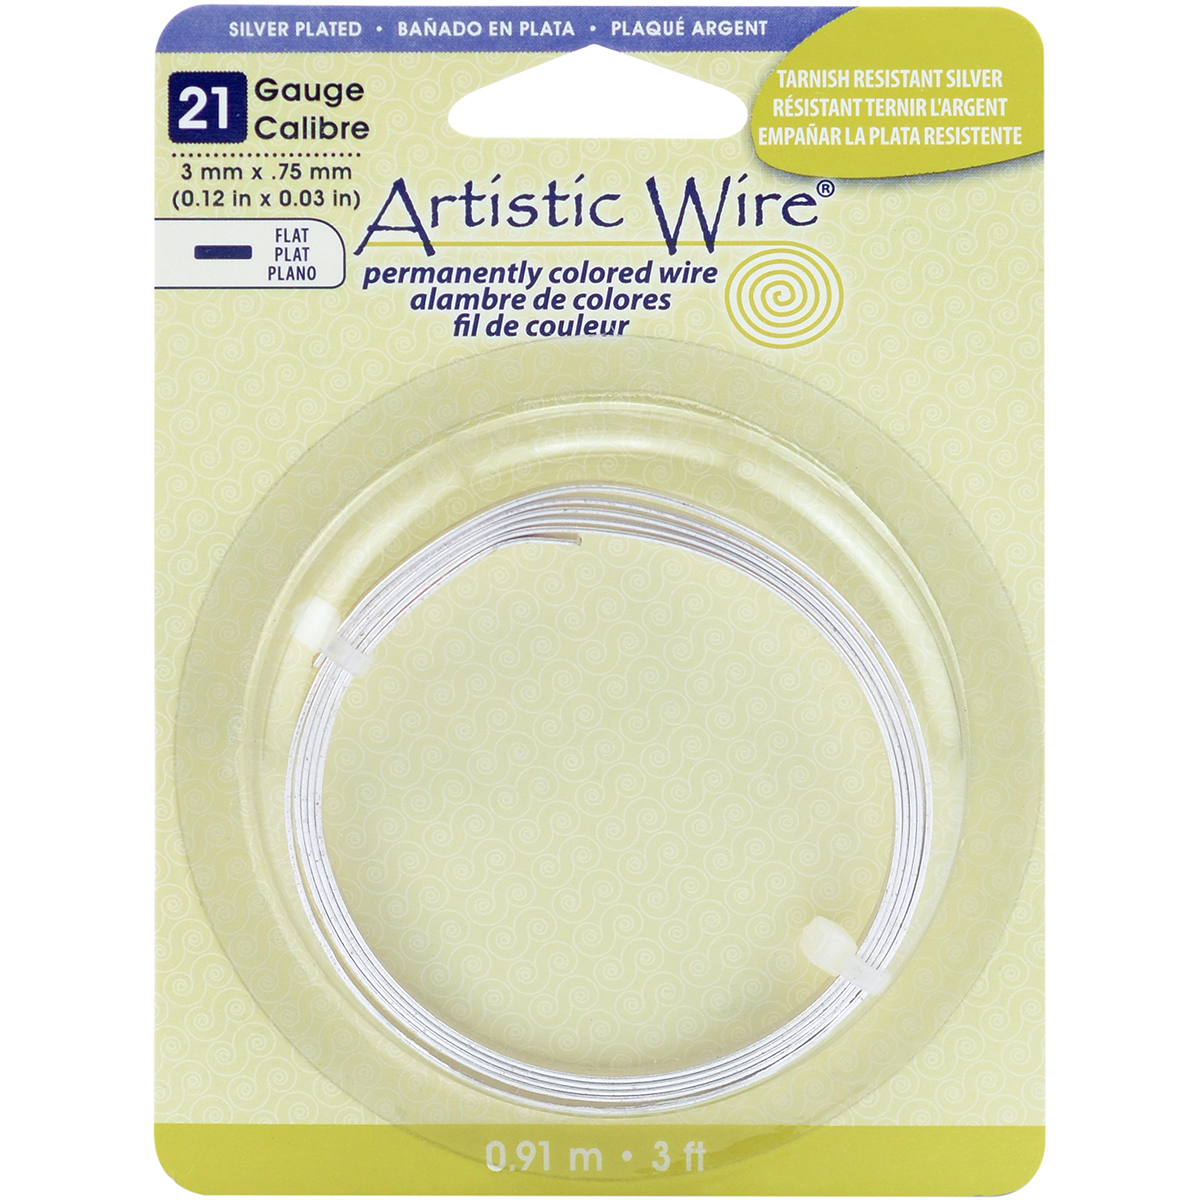 Artistic Wire Flat-Silver-Plated - 21 Gauge, 3mmX.75mmX3'